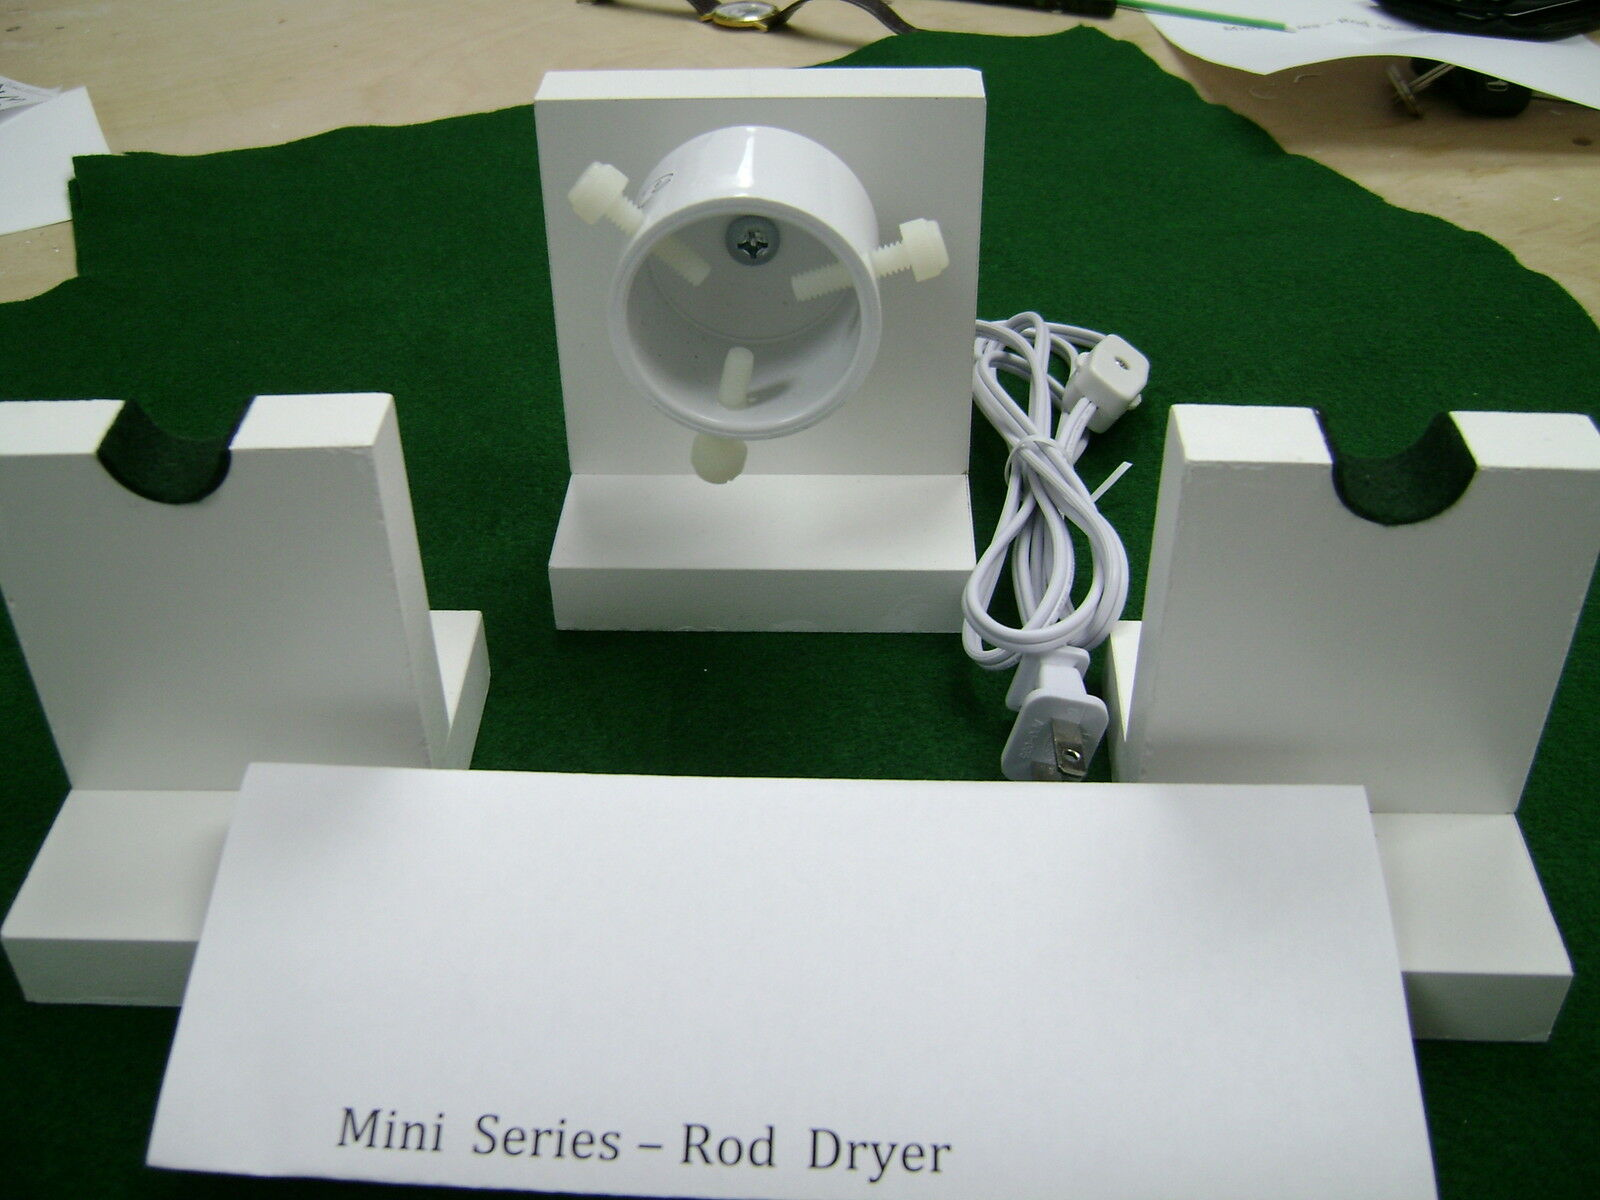 Mini Series ---   15-17  RPM-ROD DRYING-DRYER  MOTOR  KIT --  with 2 rod stands  cheap and top quality